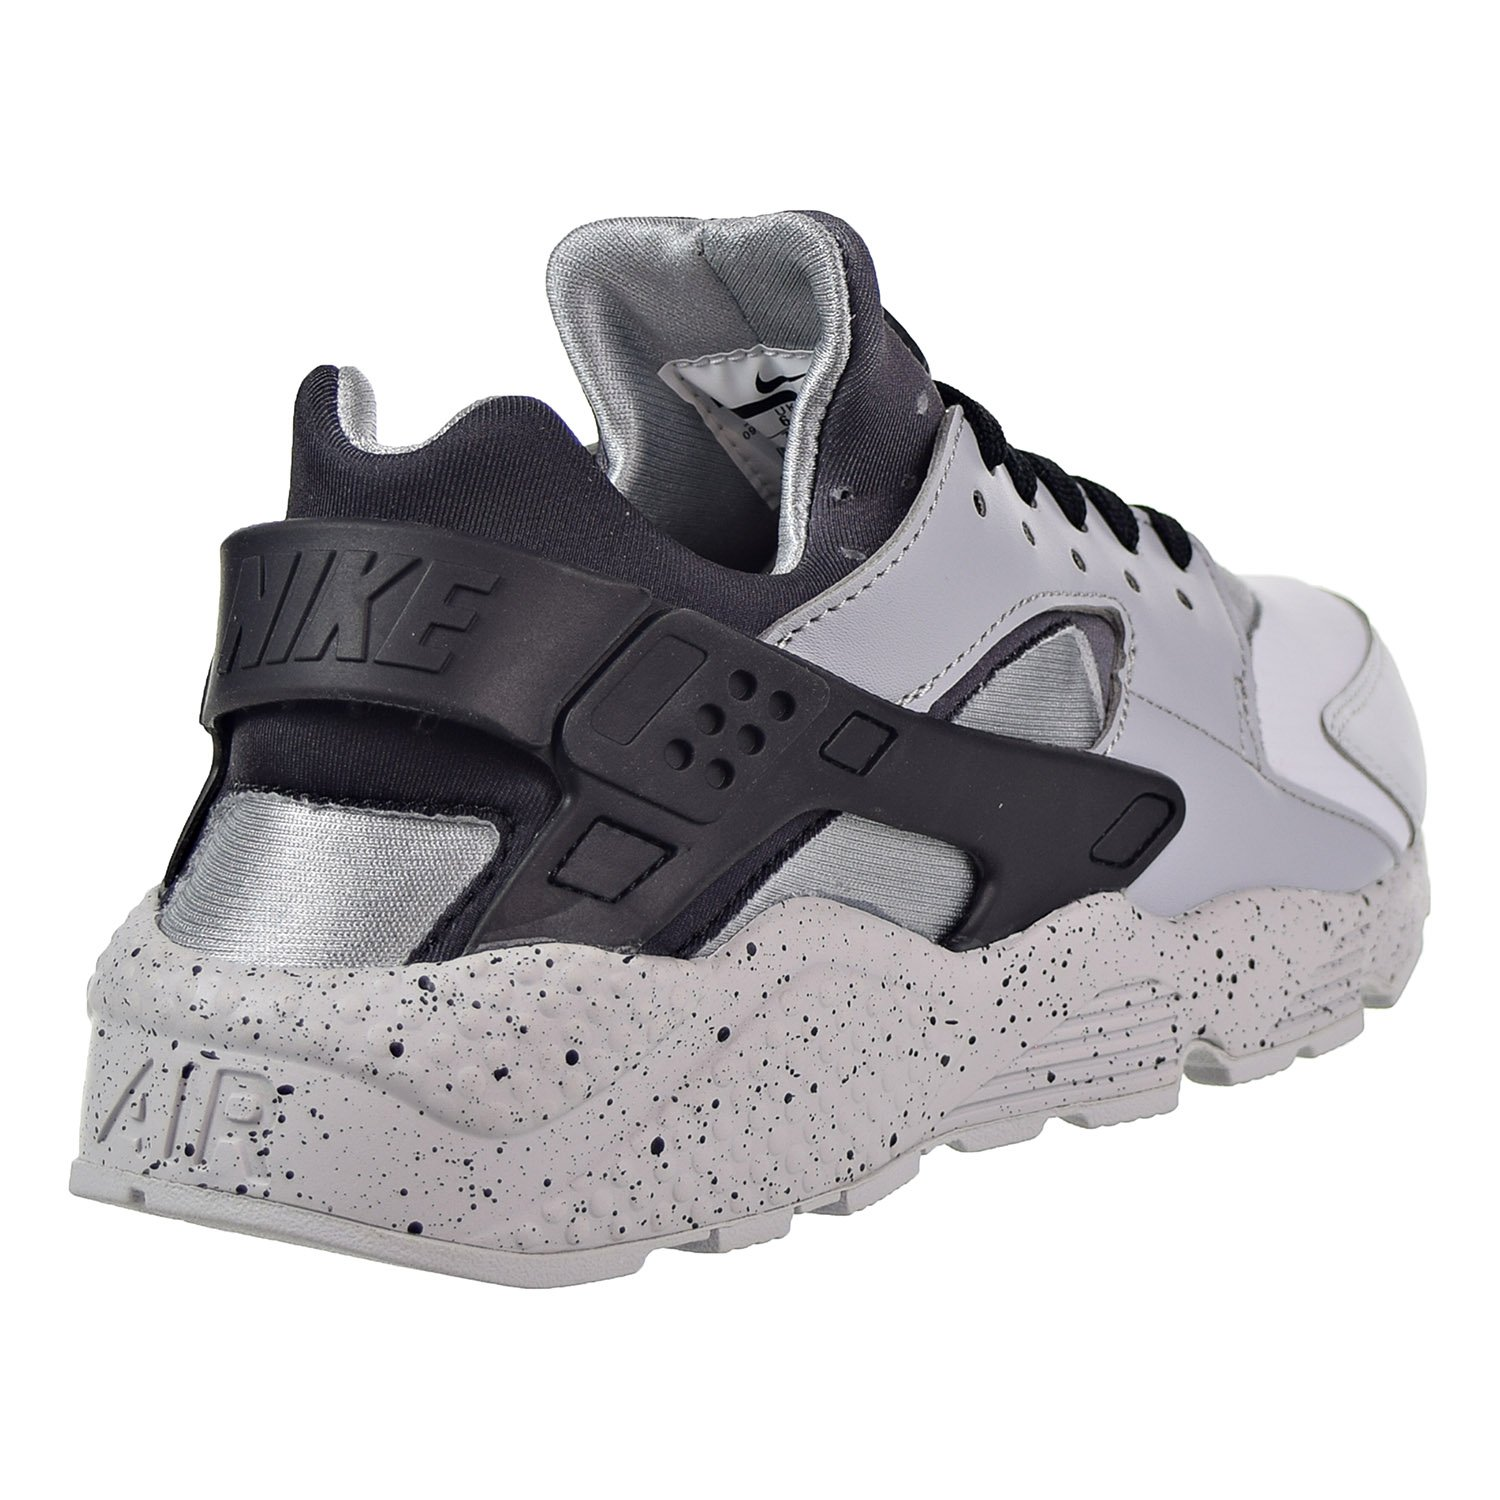 1712494fc78a Nike Men s Air Huarache Run PRM Pure Platinum Wolf Grey Black 704830-011  (Size  13)  Buy Online at Low Prices in India - Amazon.in